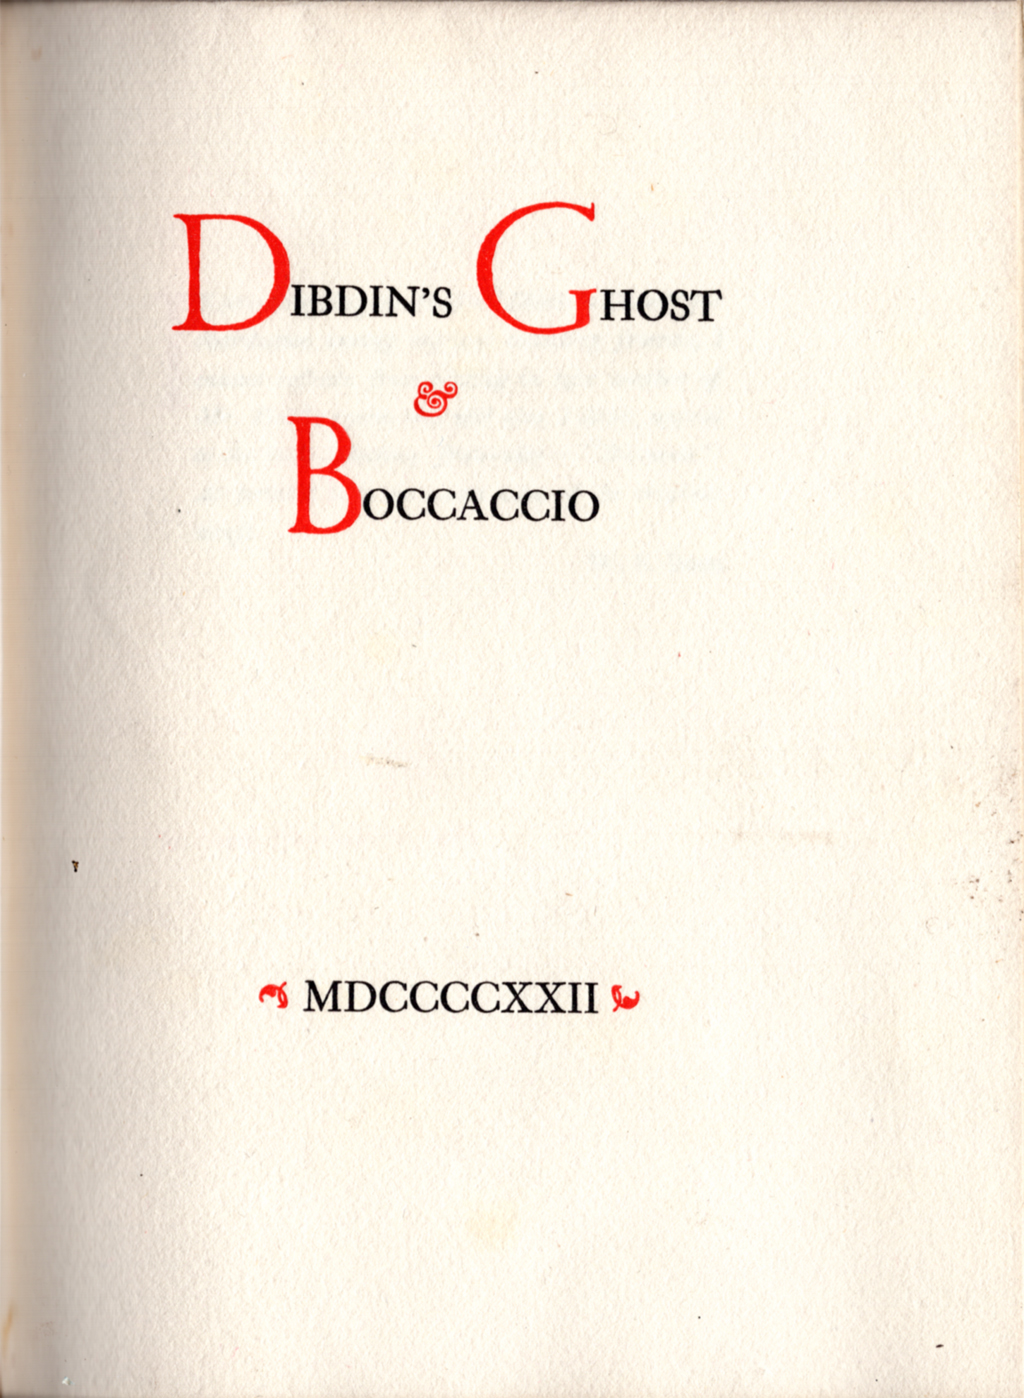 Title page for Dibdin's Ghost & Boccaccio by Eugene Field (Boston: The Merrymount Press, 1922). Initials by W.A. Dwiggins.